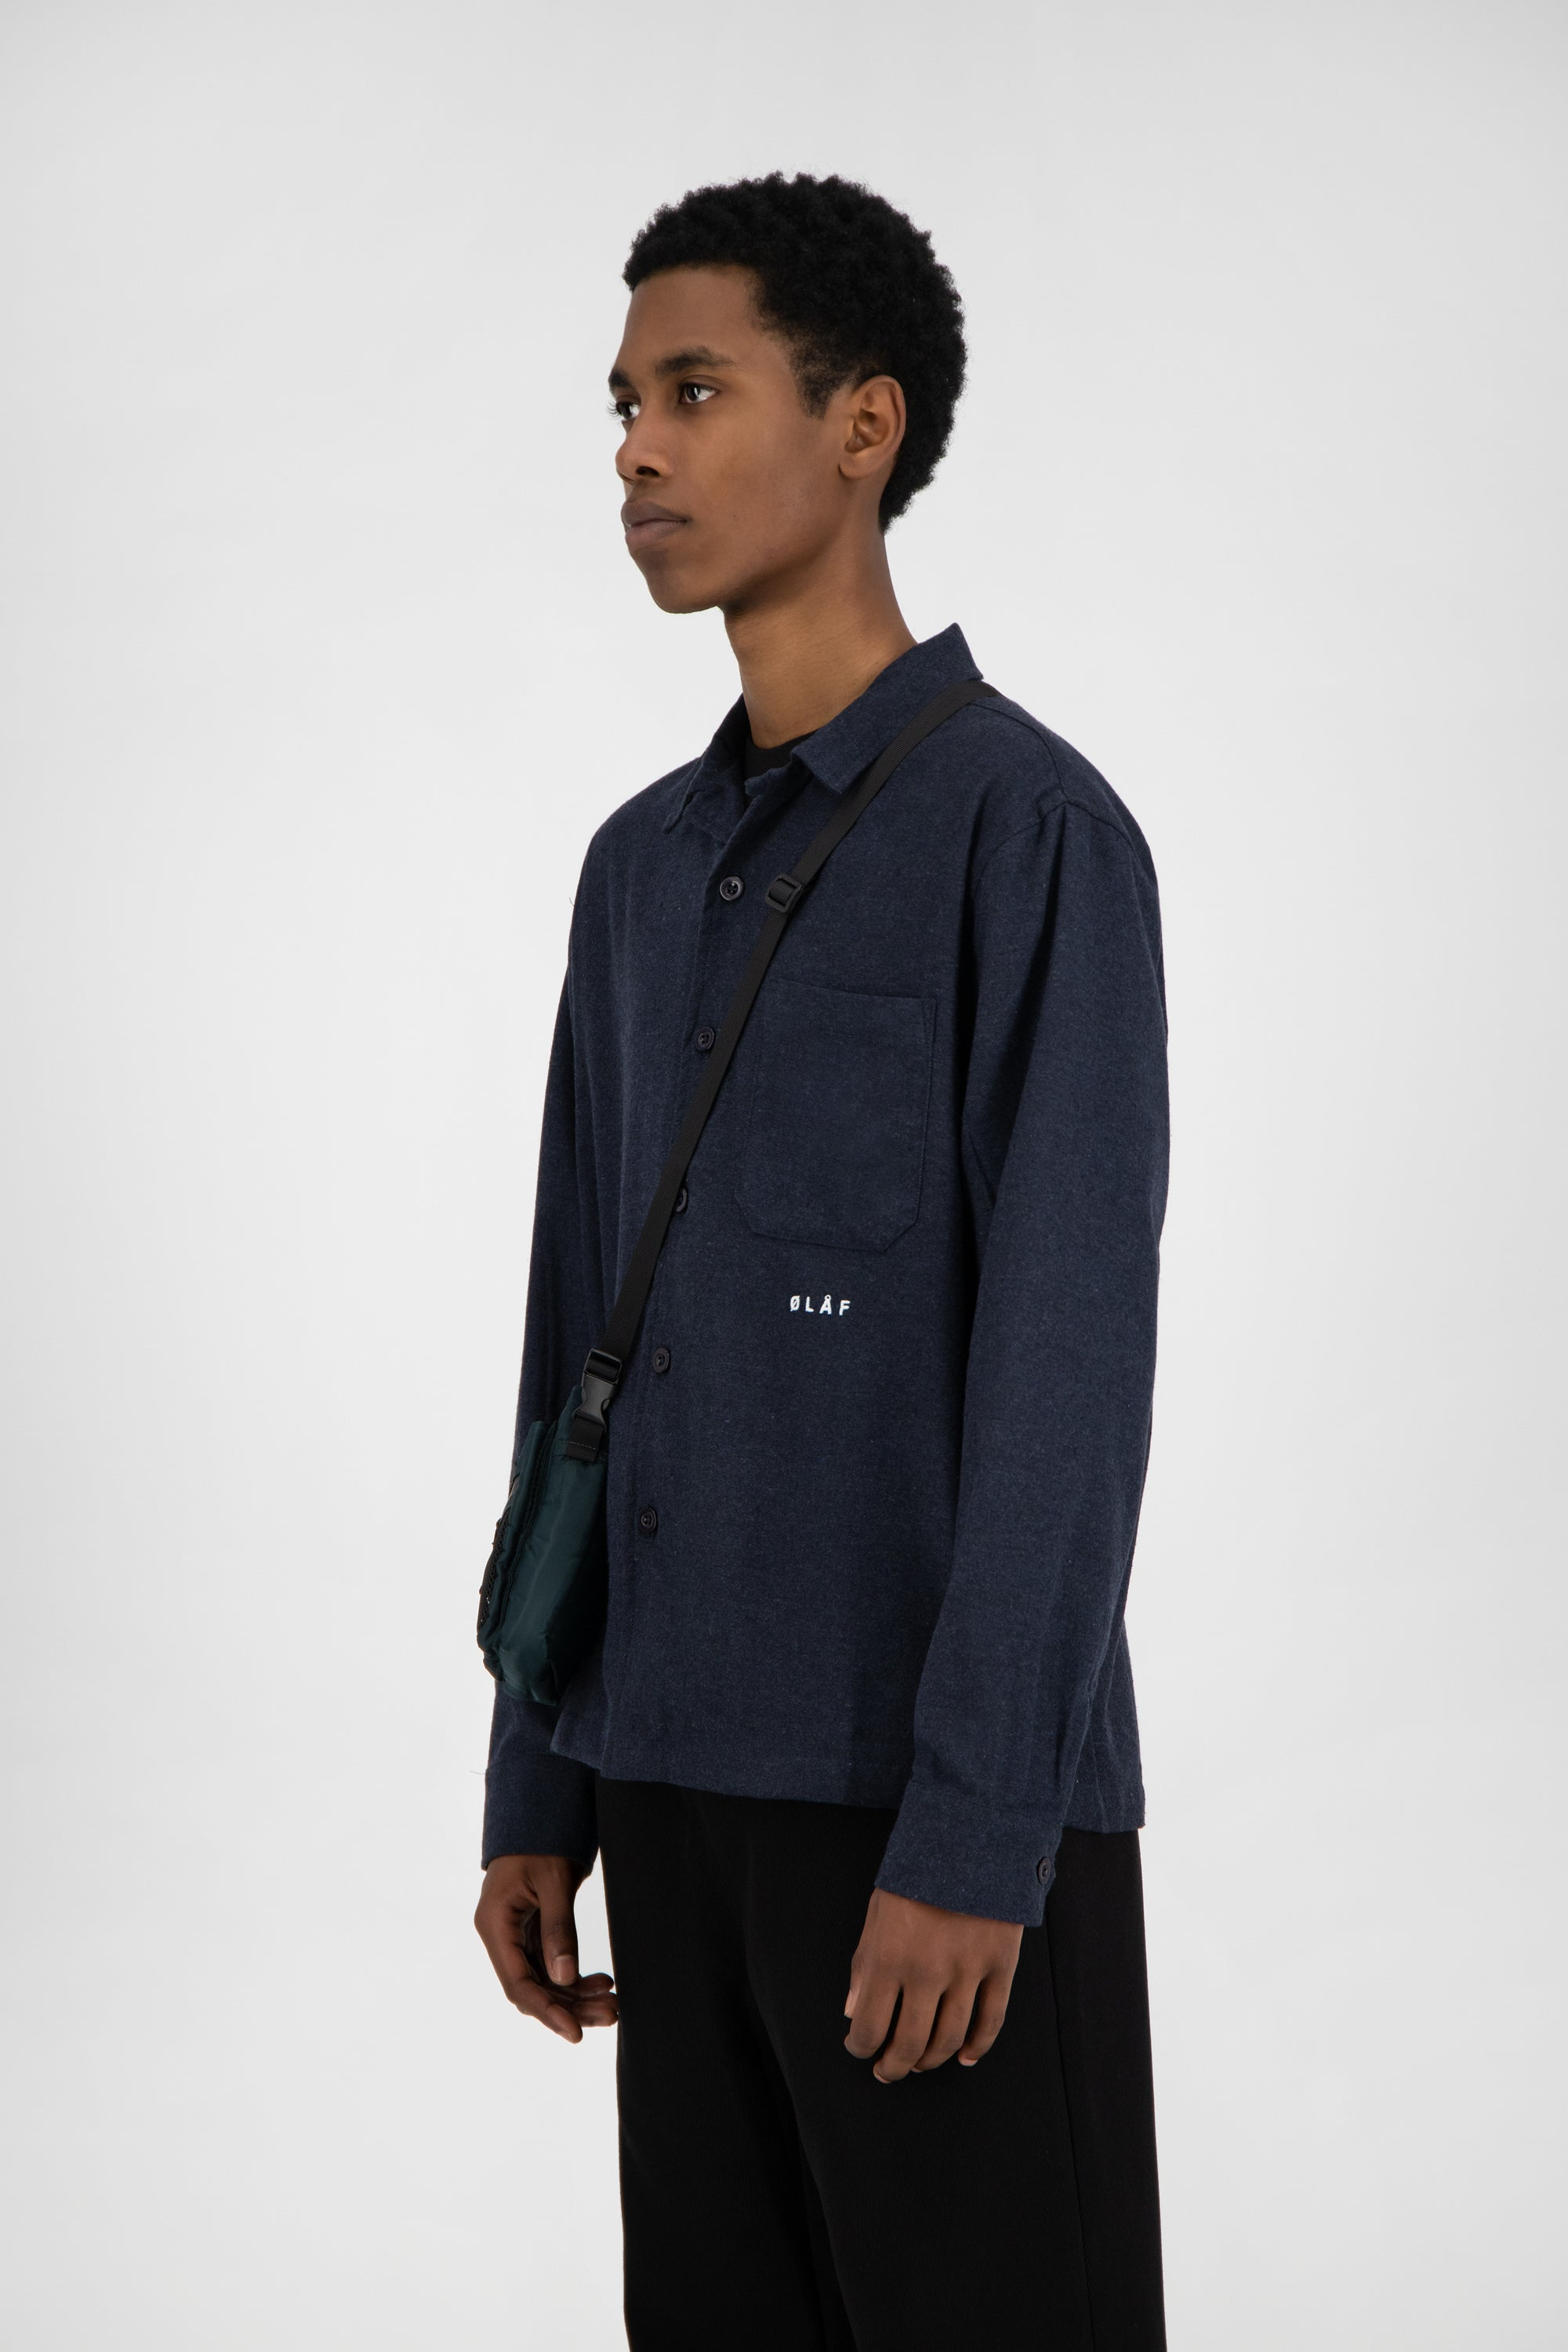 ØLÅF Flannel Shirt <br>Blue